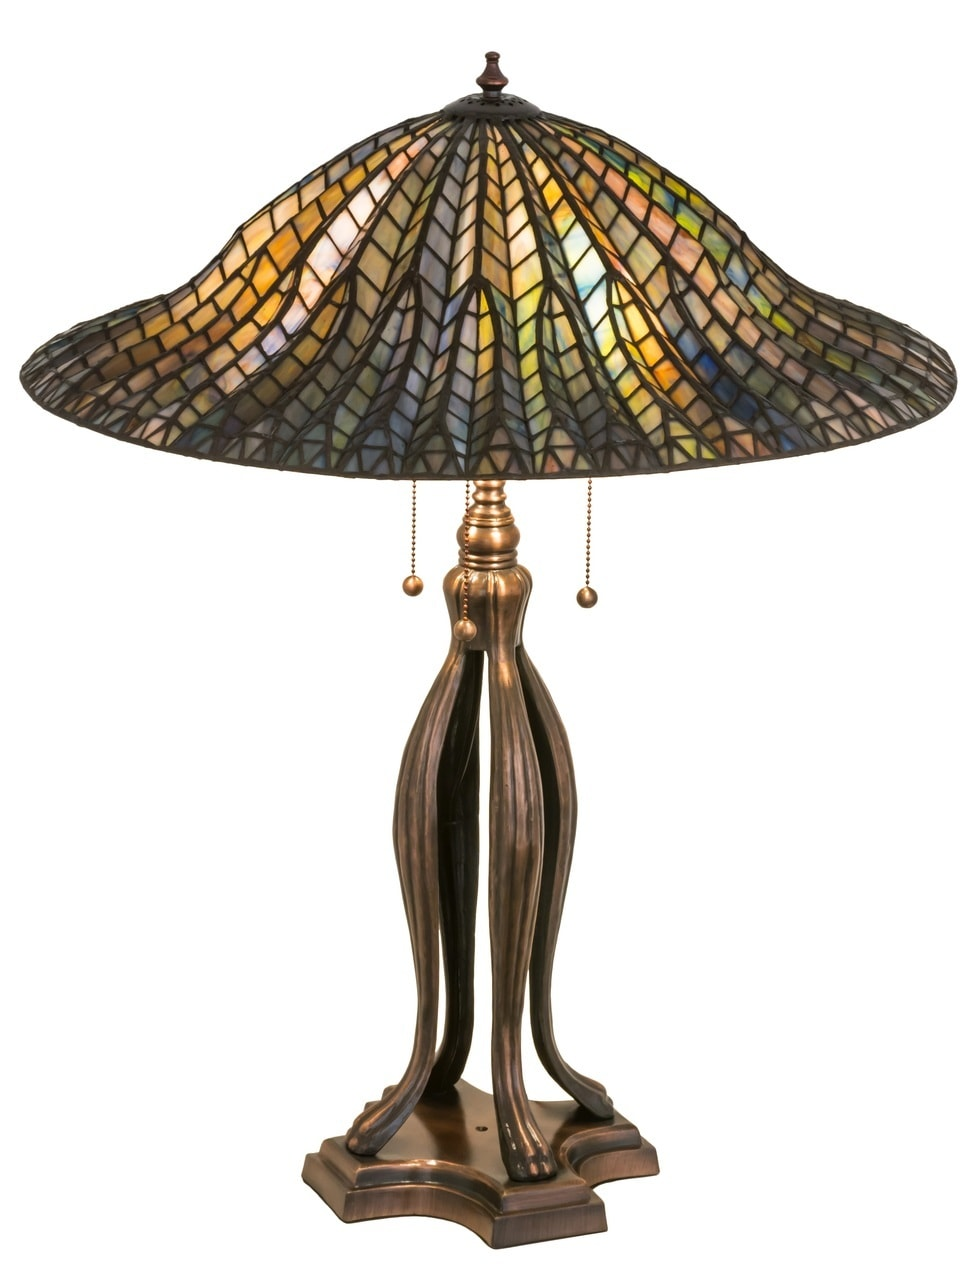 products tiffany lotus leaf table lamp 29385  44201.1516432997.1280.1280